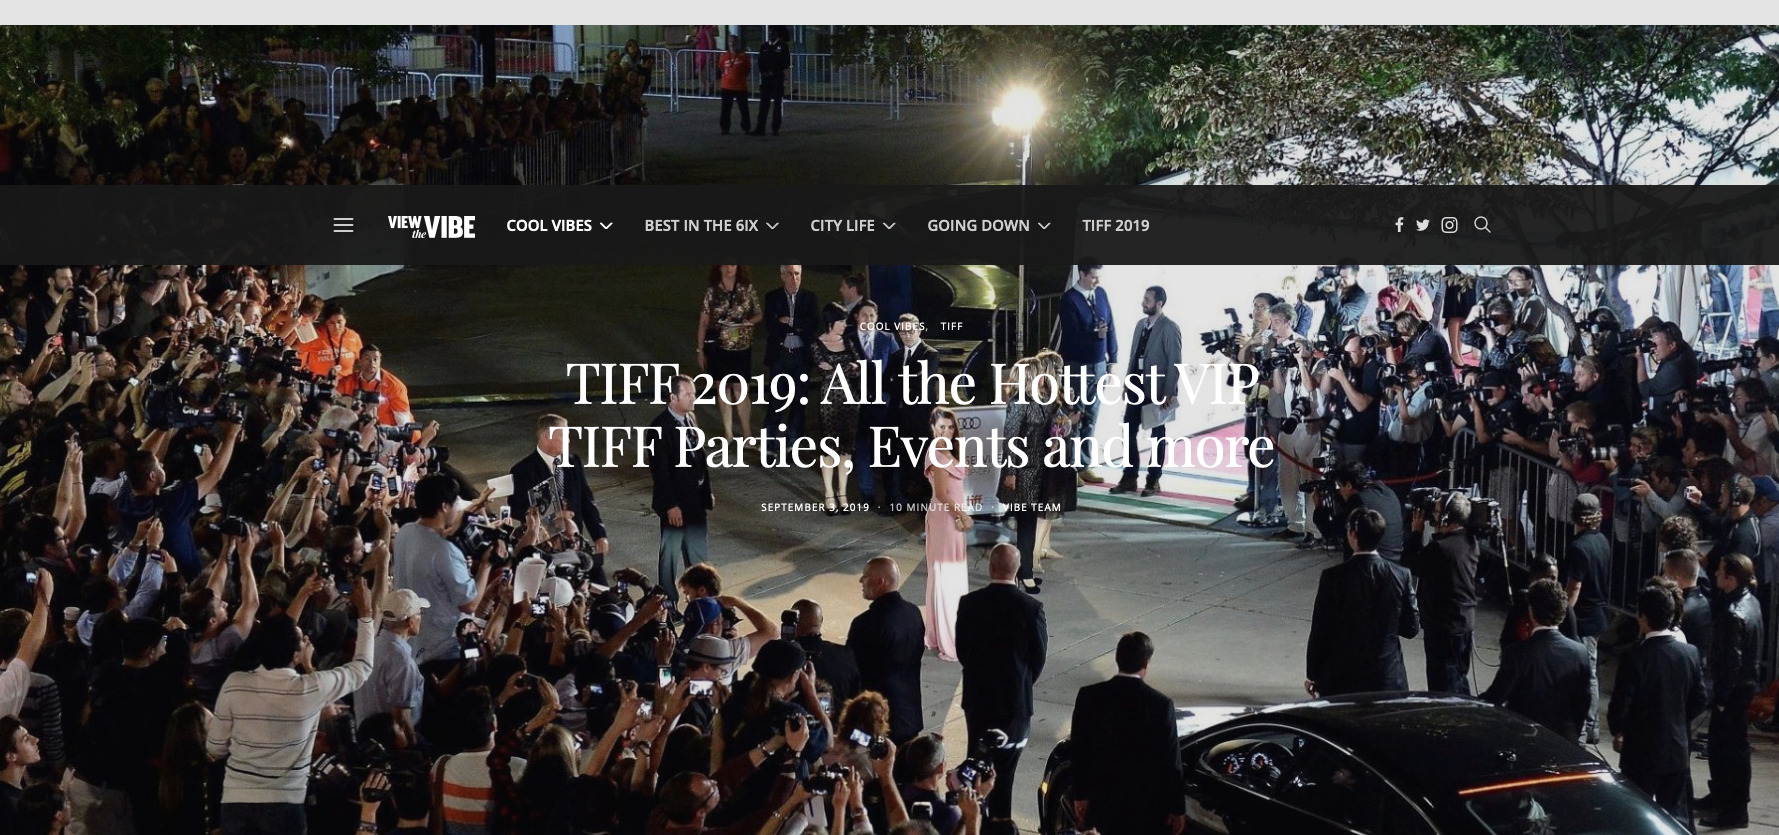 Screenshot_2019-09-04 TIFF 2019 All the Hottest VIP TIFF Parties, Events and more View the VIBE Toronto.jpg